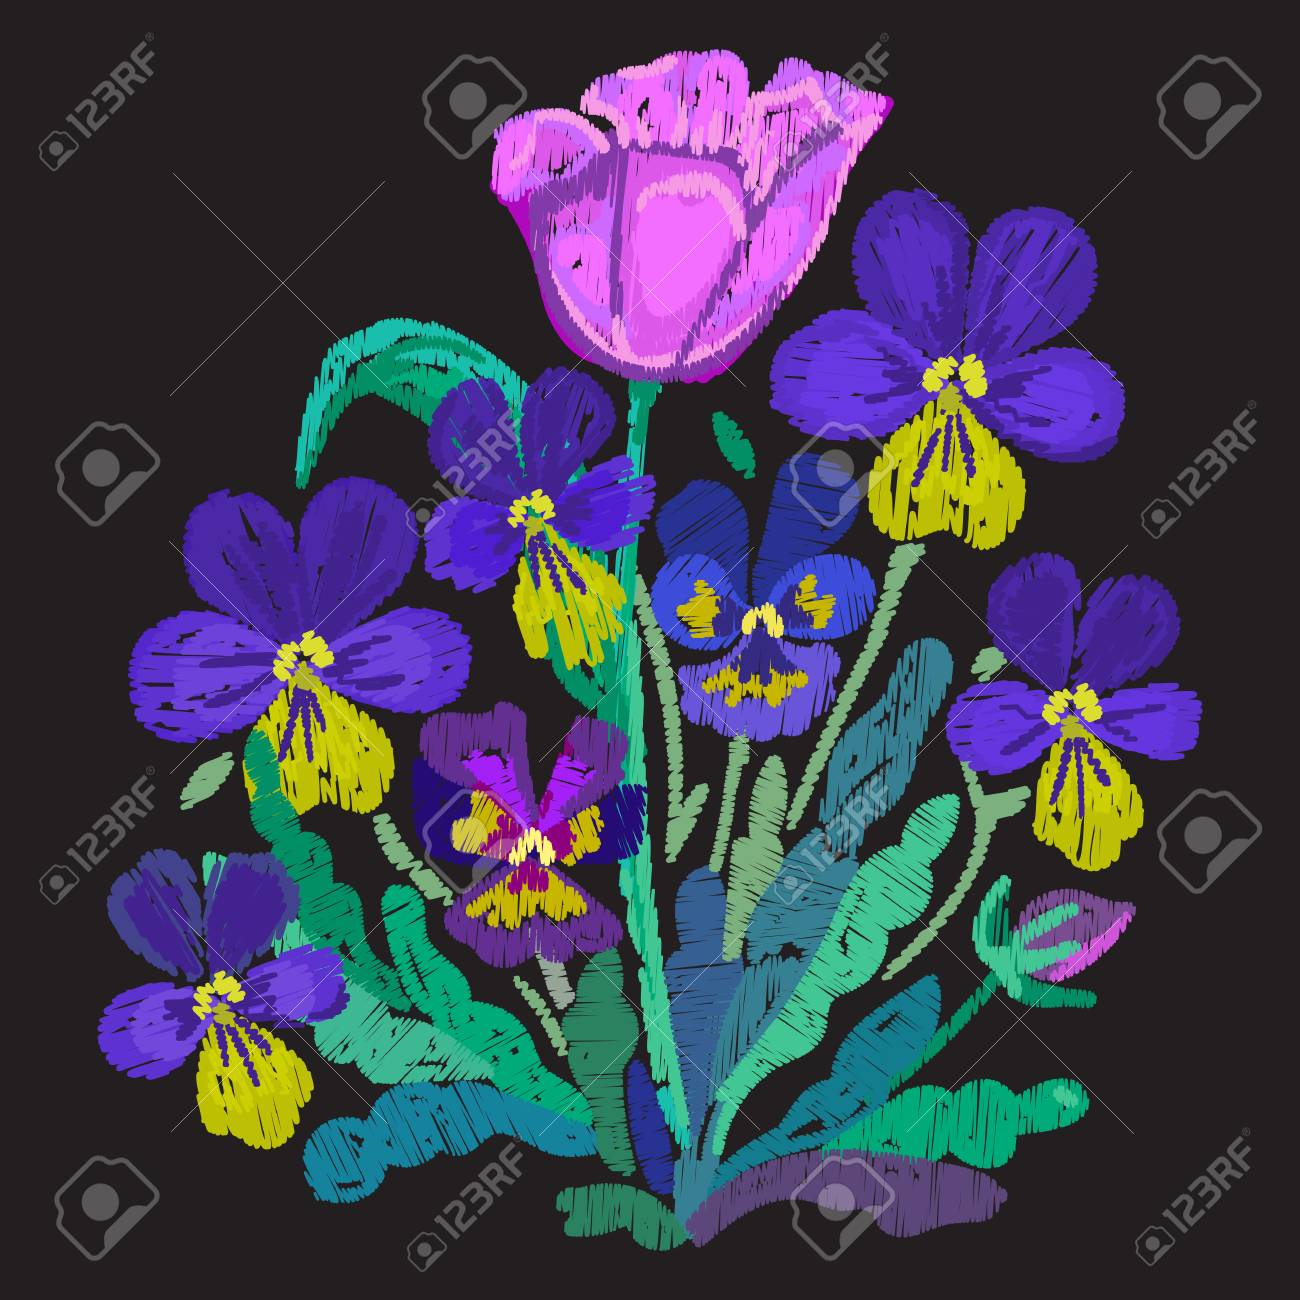 Tulip And Violet Flowers Pansies Embroidered Floral Embroidery Royalty Free Cliparts Vectors And Stock Illustration Image 86196078